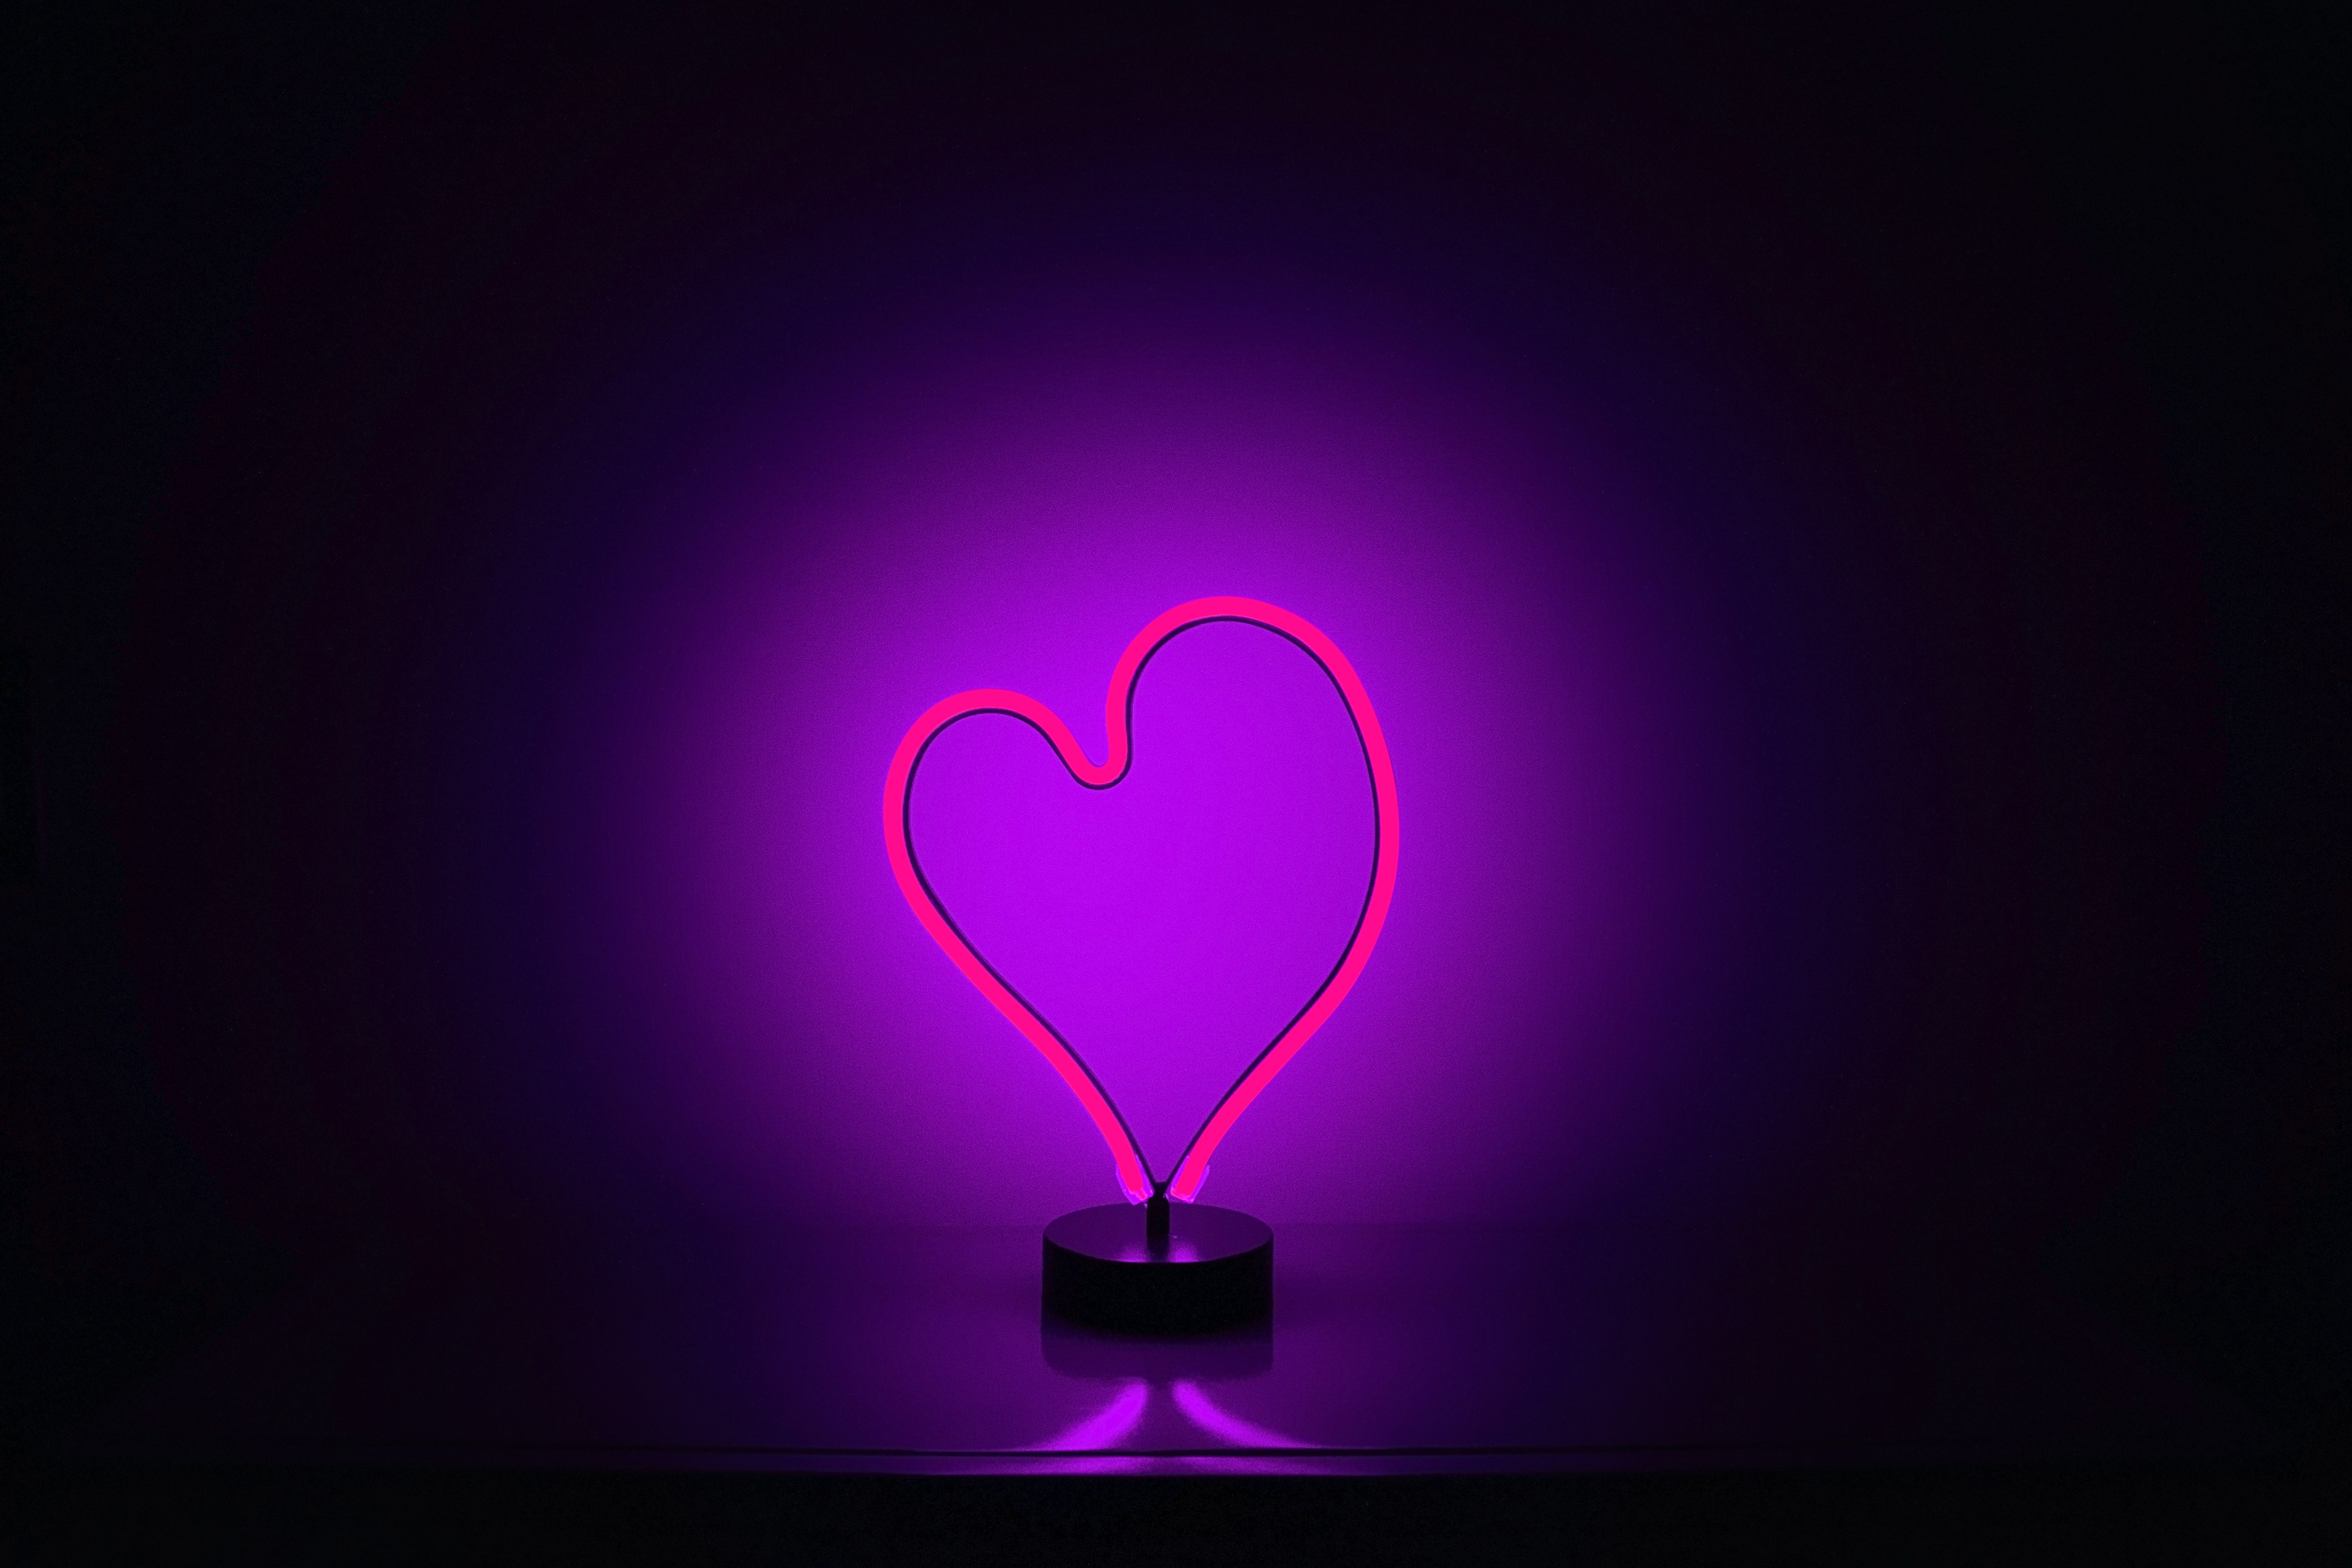 153856 download wallpaper Dark, Heart, Neon, Backlight, Illumination screensavers and pictures for free